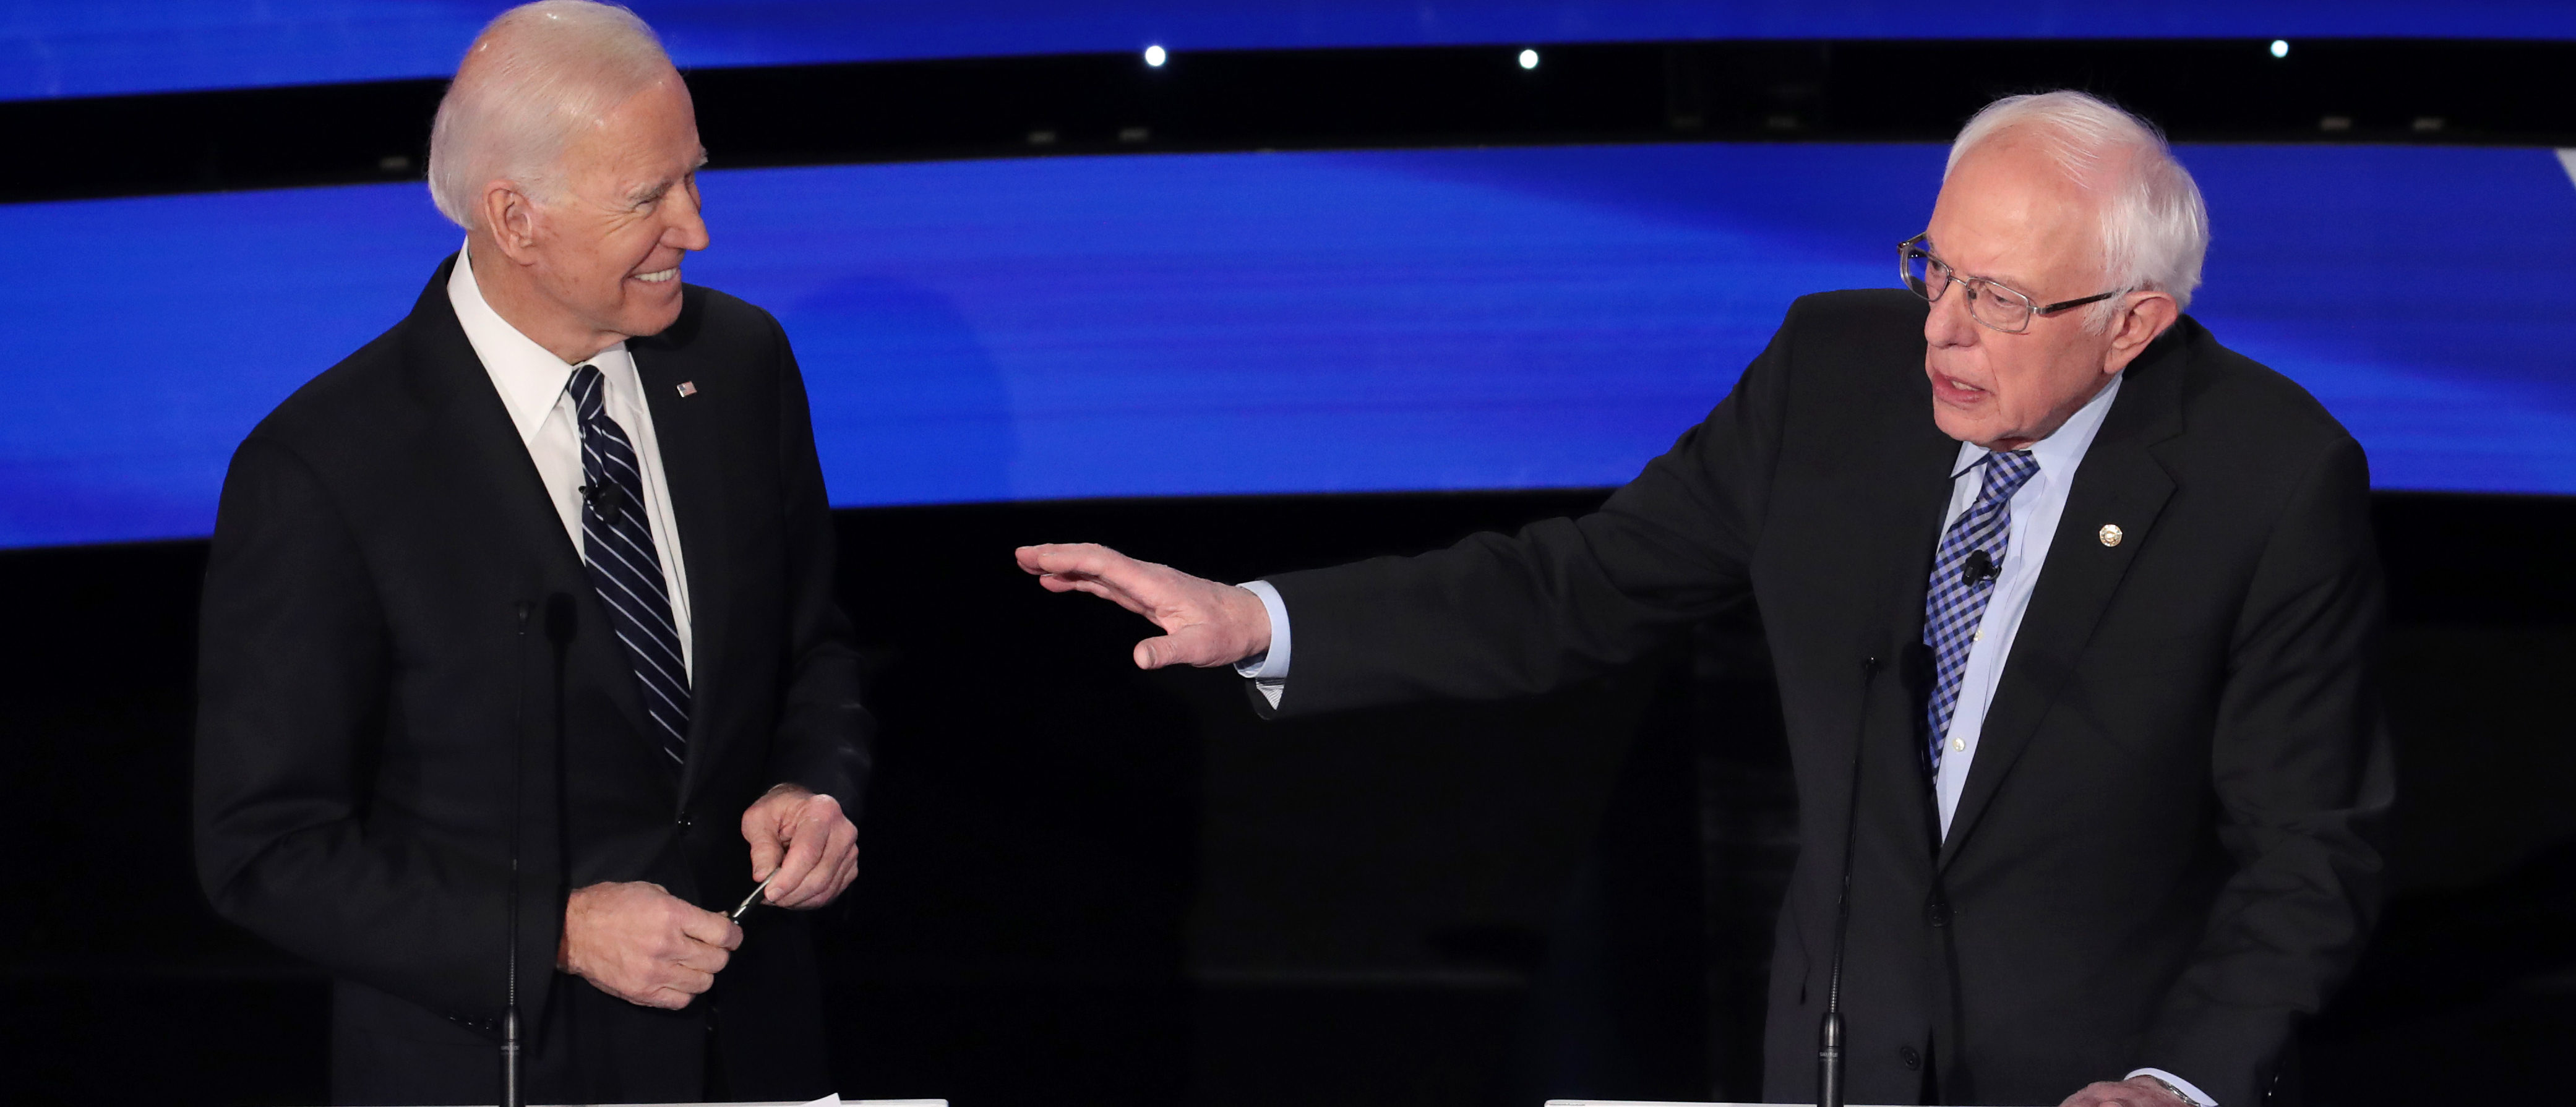 DES MOINES, IOWA - JANUARY 14: Former Vice President Joe Biden (L) reacts as Sen. Bernie Sanders (I-VT) makes a point during the Democratic presidential primary debate at Drake University on January 14, 2020 in Des Moines, Iowa. Six candidates out of the field qualified for the first Democratic presidential primary debate of 2020, hosted by CNN and the Des Moines Register. (Photo by Scott Olson/Getty Images)